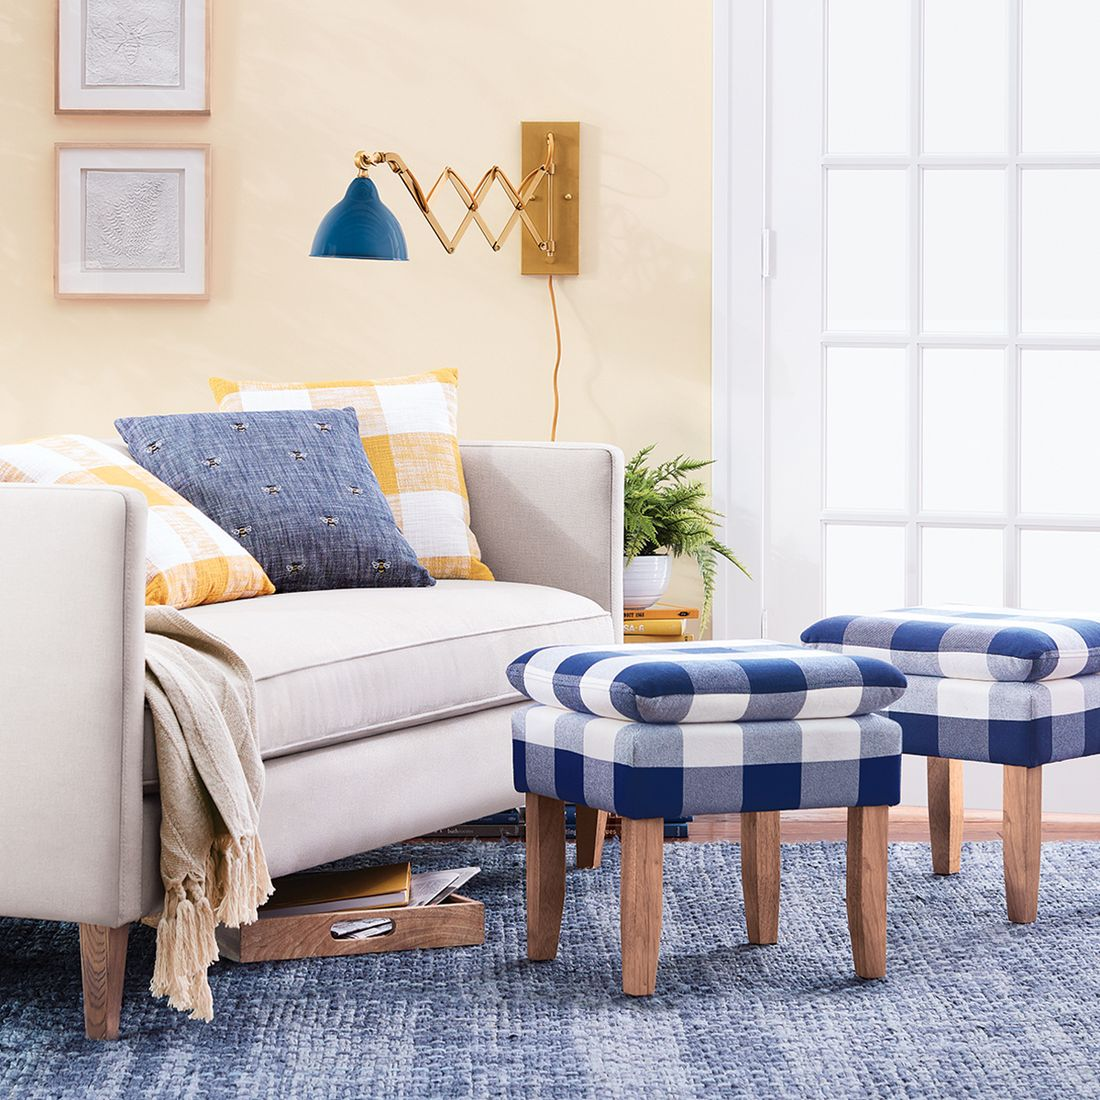 interesting interior design living room. Living room  So chic calm Why go anywhere else Grab a friend kick back settle in Shop the looks Home Ideas Design Inspiration Target